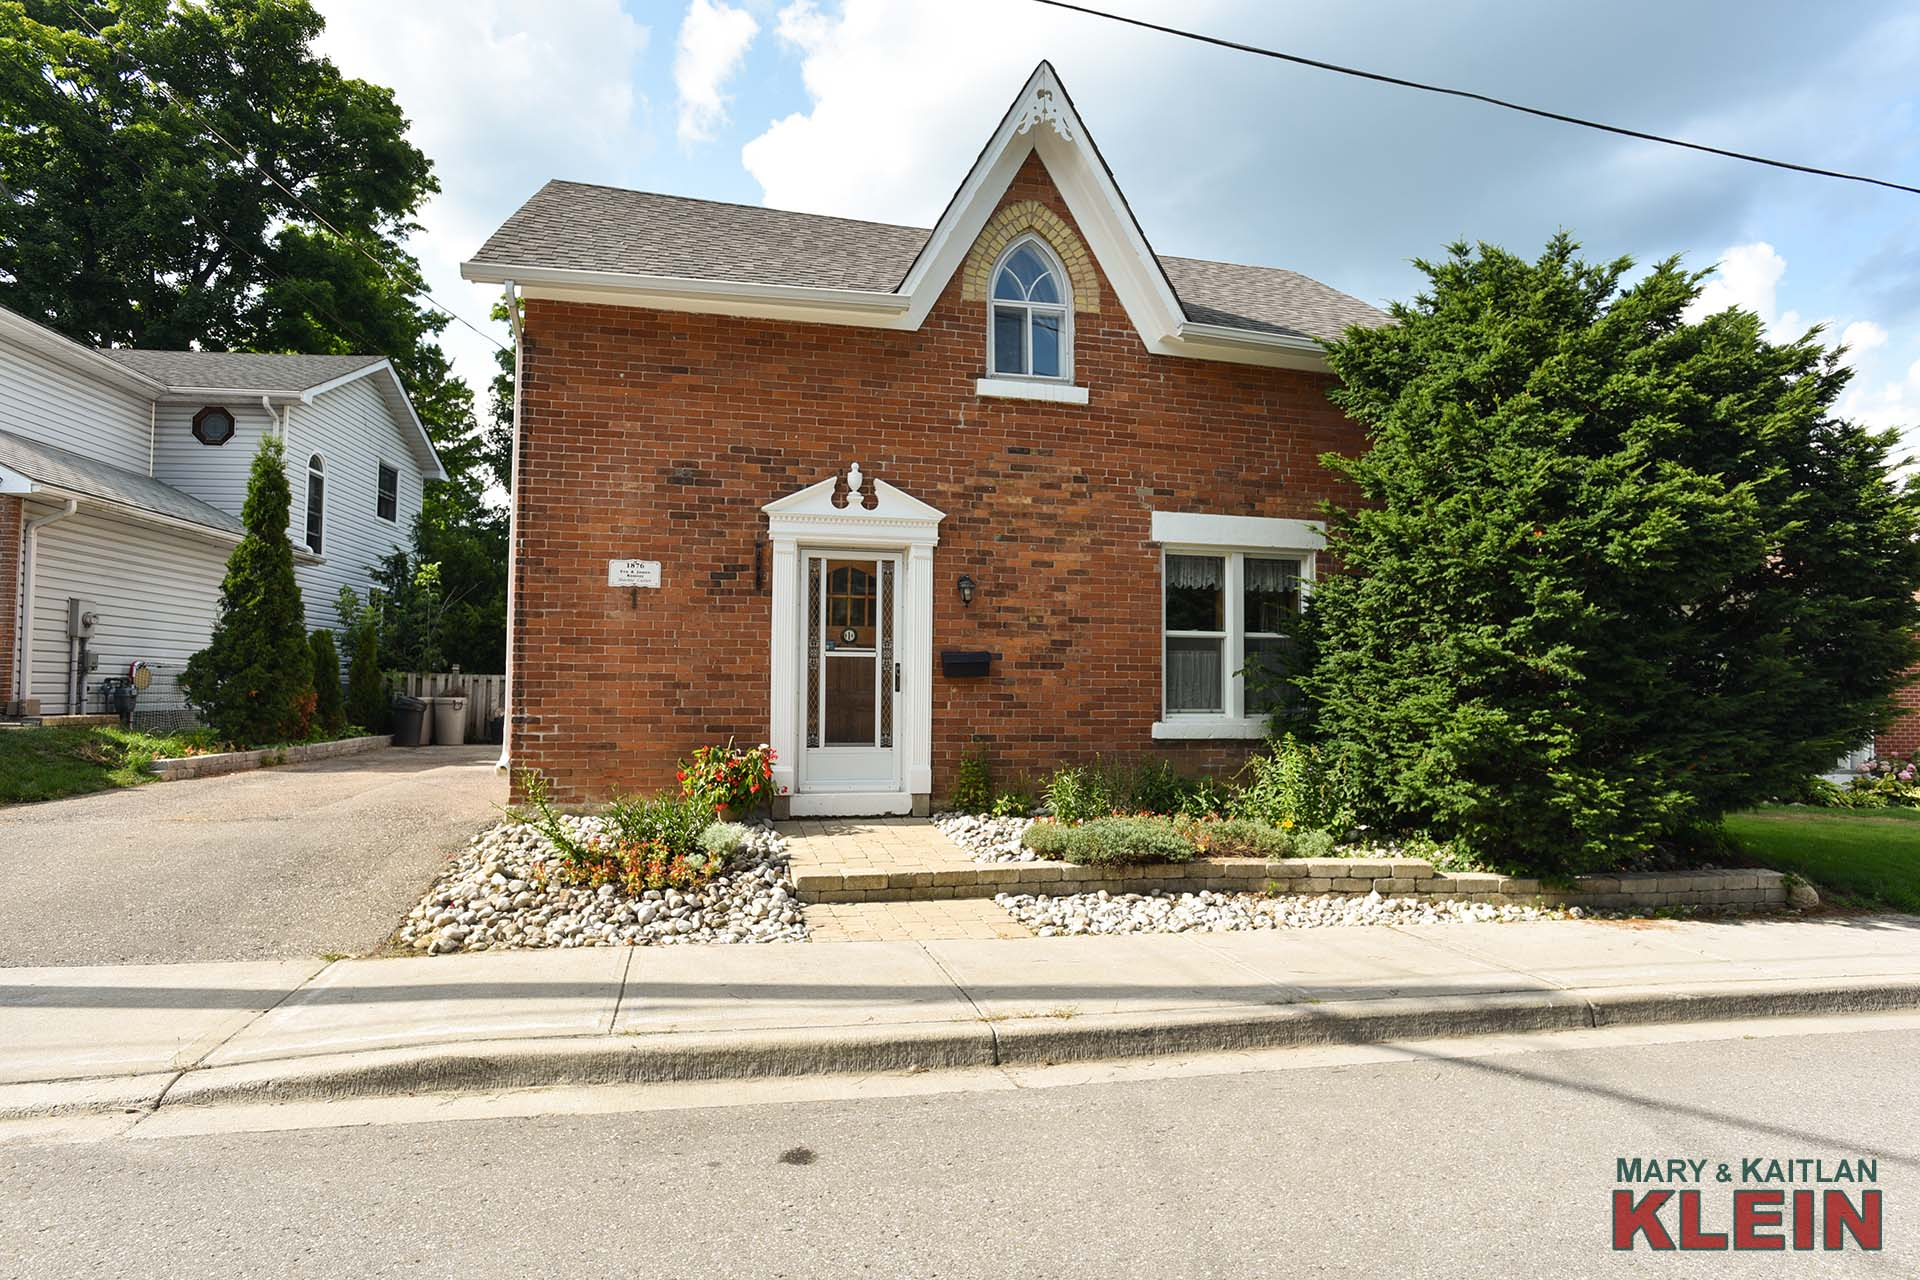 Home for Sale, 1 Parsons Street, Orangeville